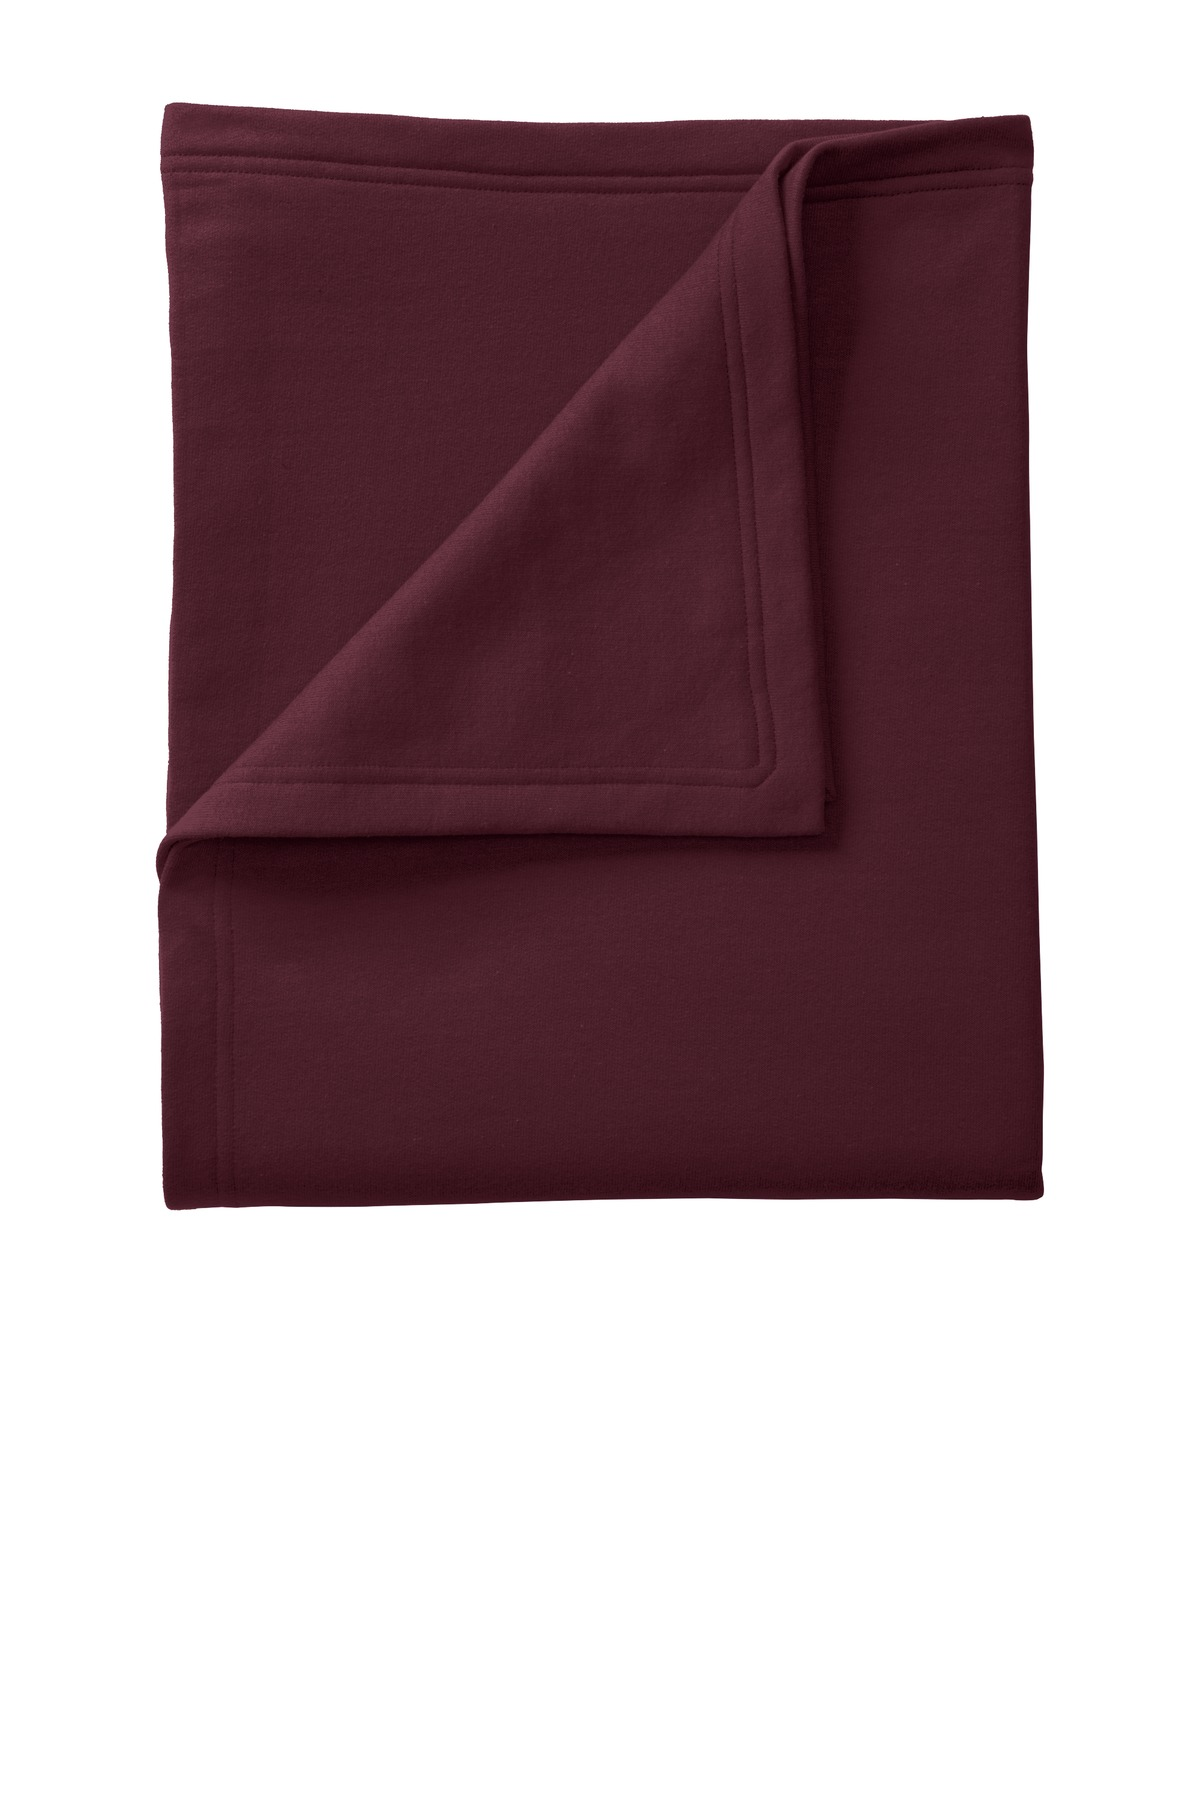 Port & Company ®  Core Fleece Sweatshirt Blanket. BP78 - Maroon